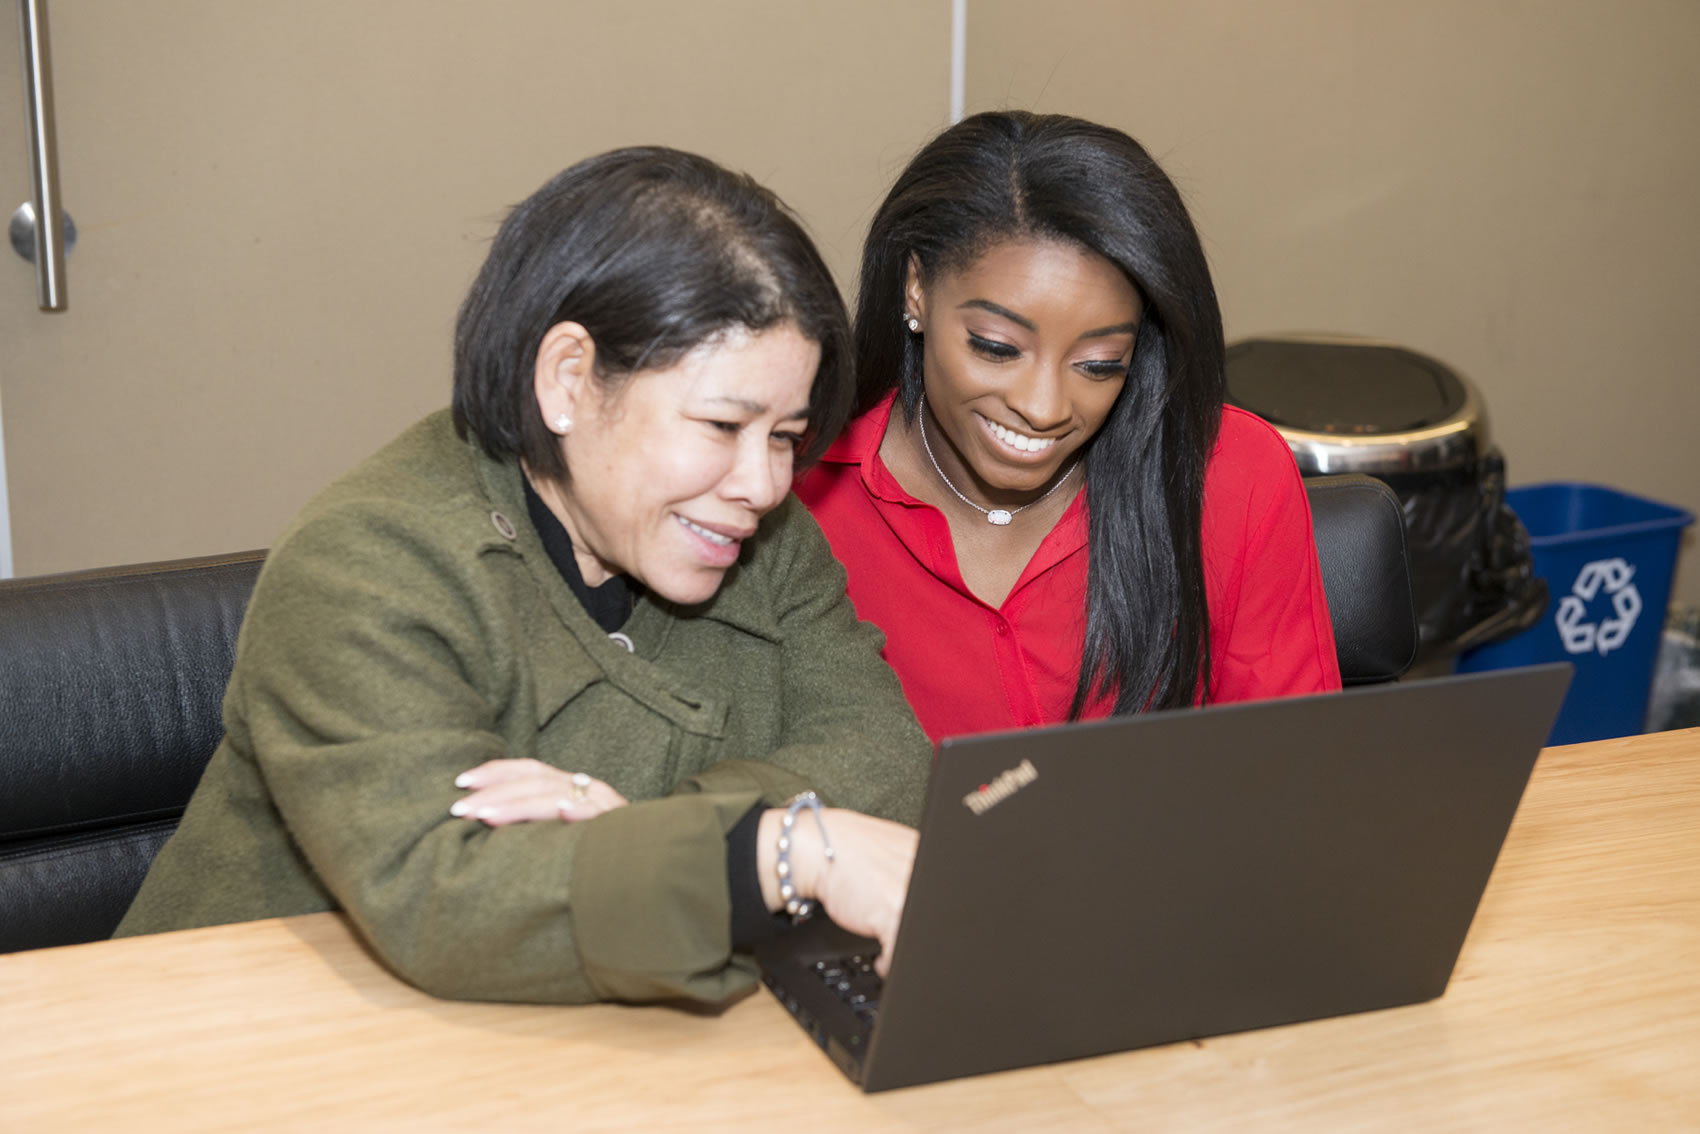 Simone Biles Joins the Education Revolution - studying alongside Simone will be her mother, Nellie Biles, who begins as a student in the university's MBA program.